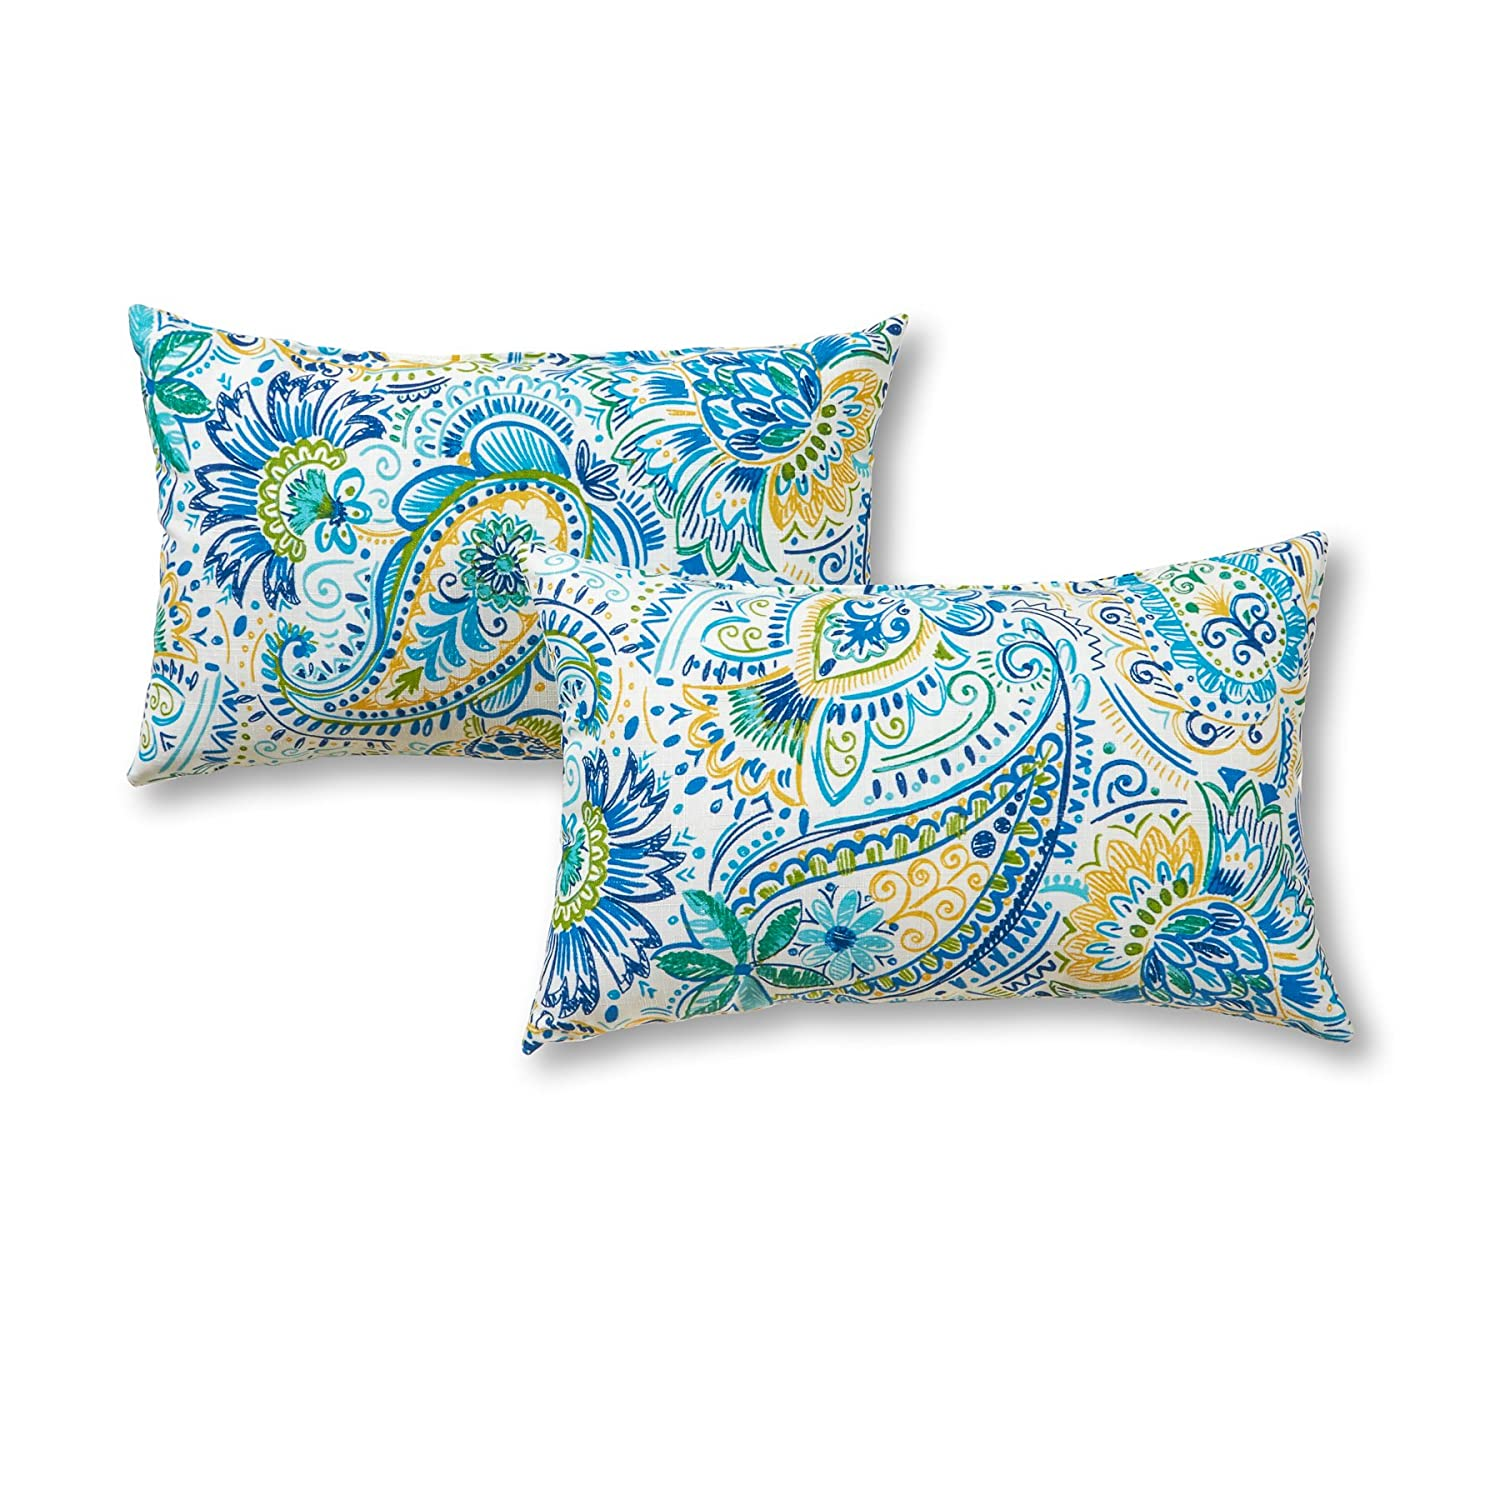 Greendale Home Fashions Rectangle Outdoor Accent Pillows in Painted Paisley Set of 2 , Baltic